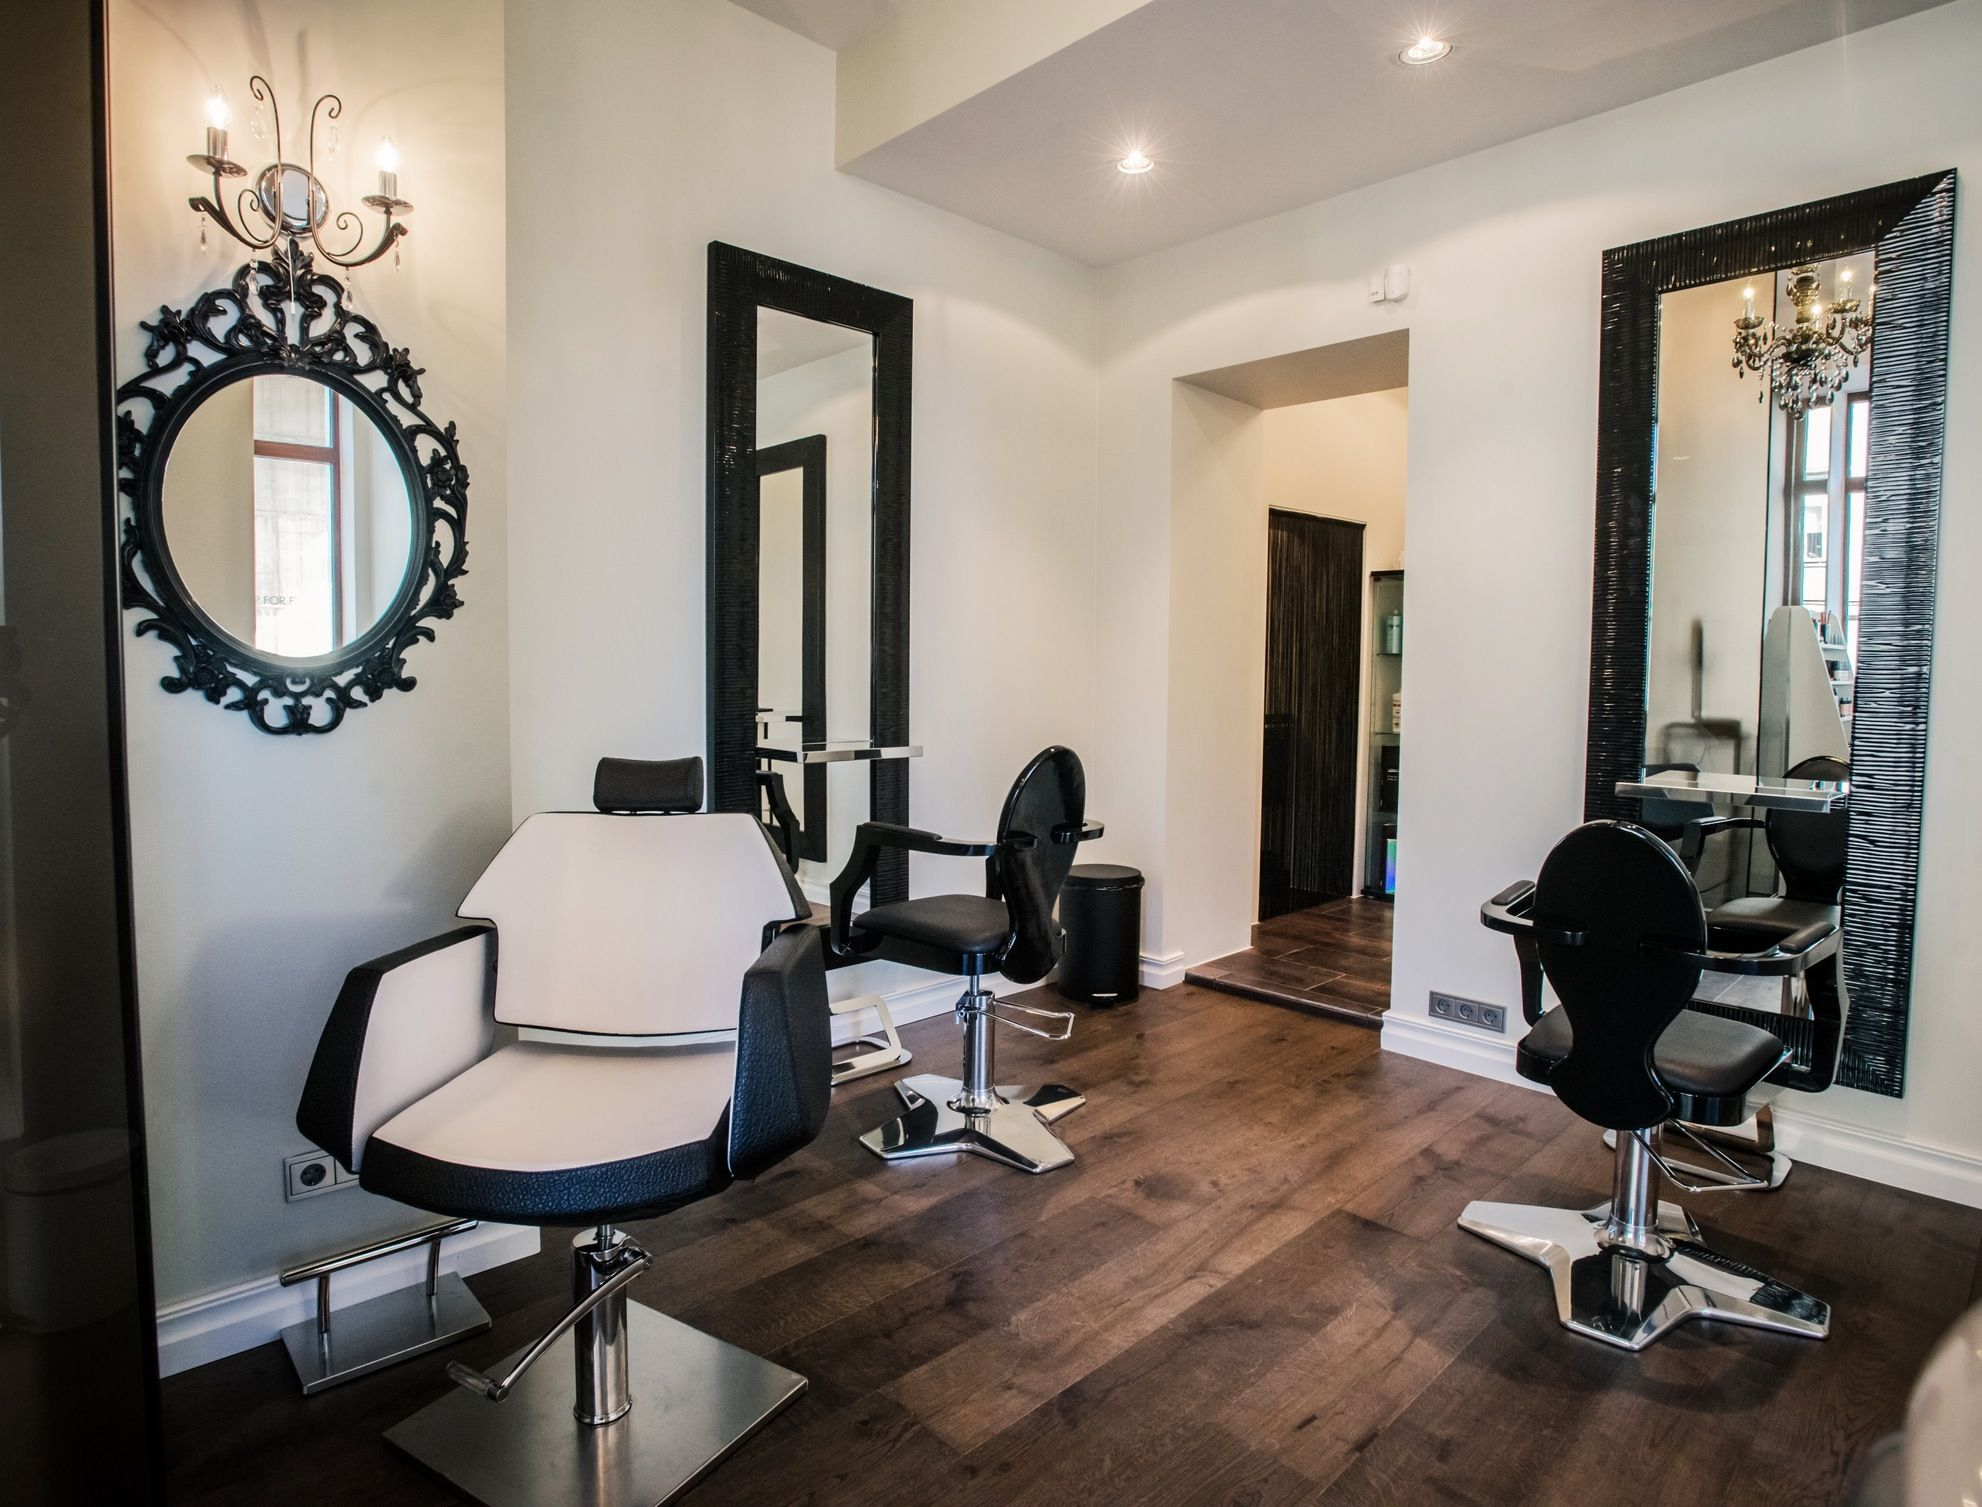 glow beauty studio kentmanni 10 tallinn make up hair manicure